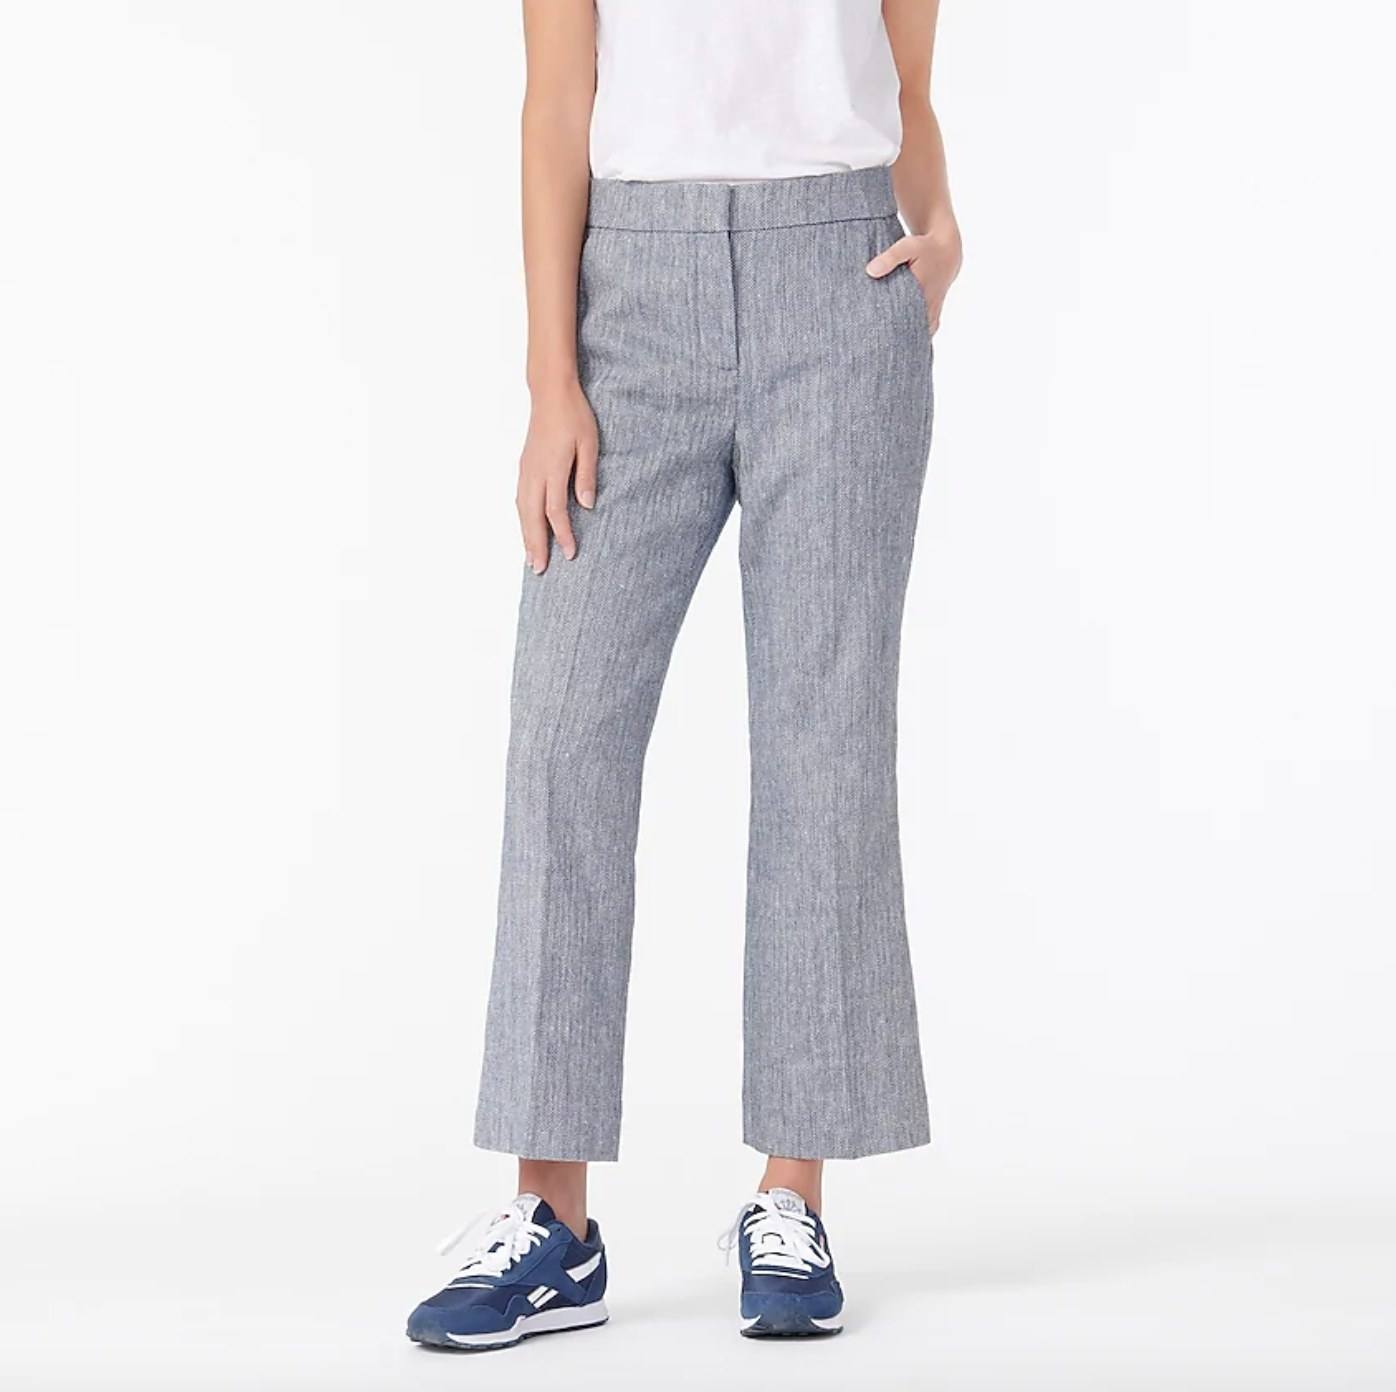 Model wearing the pair of cotton-linen trousers